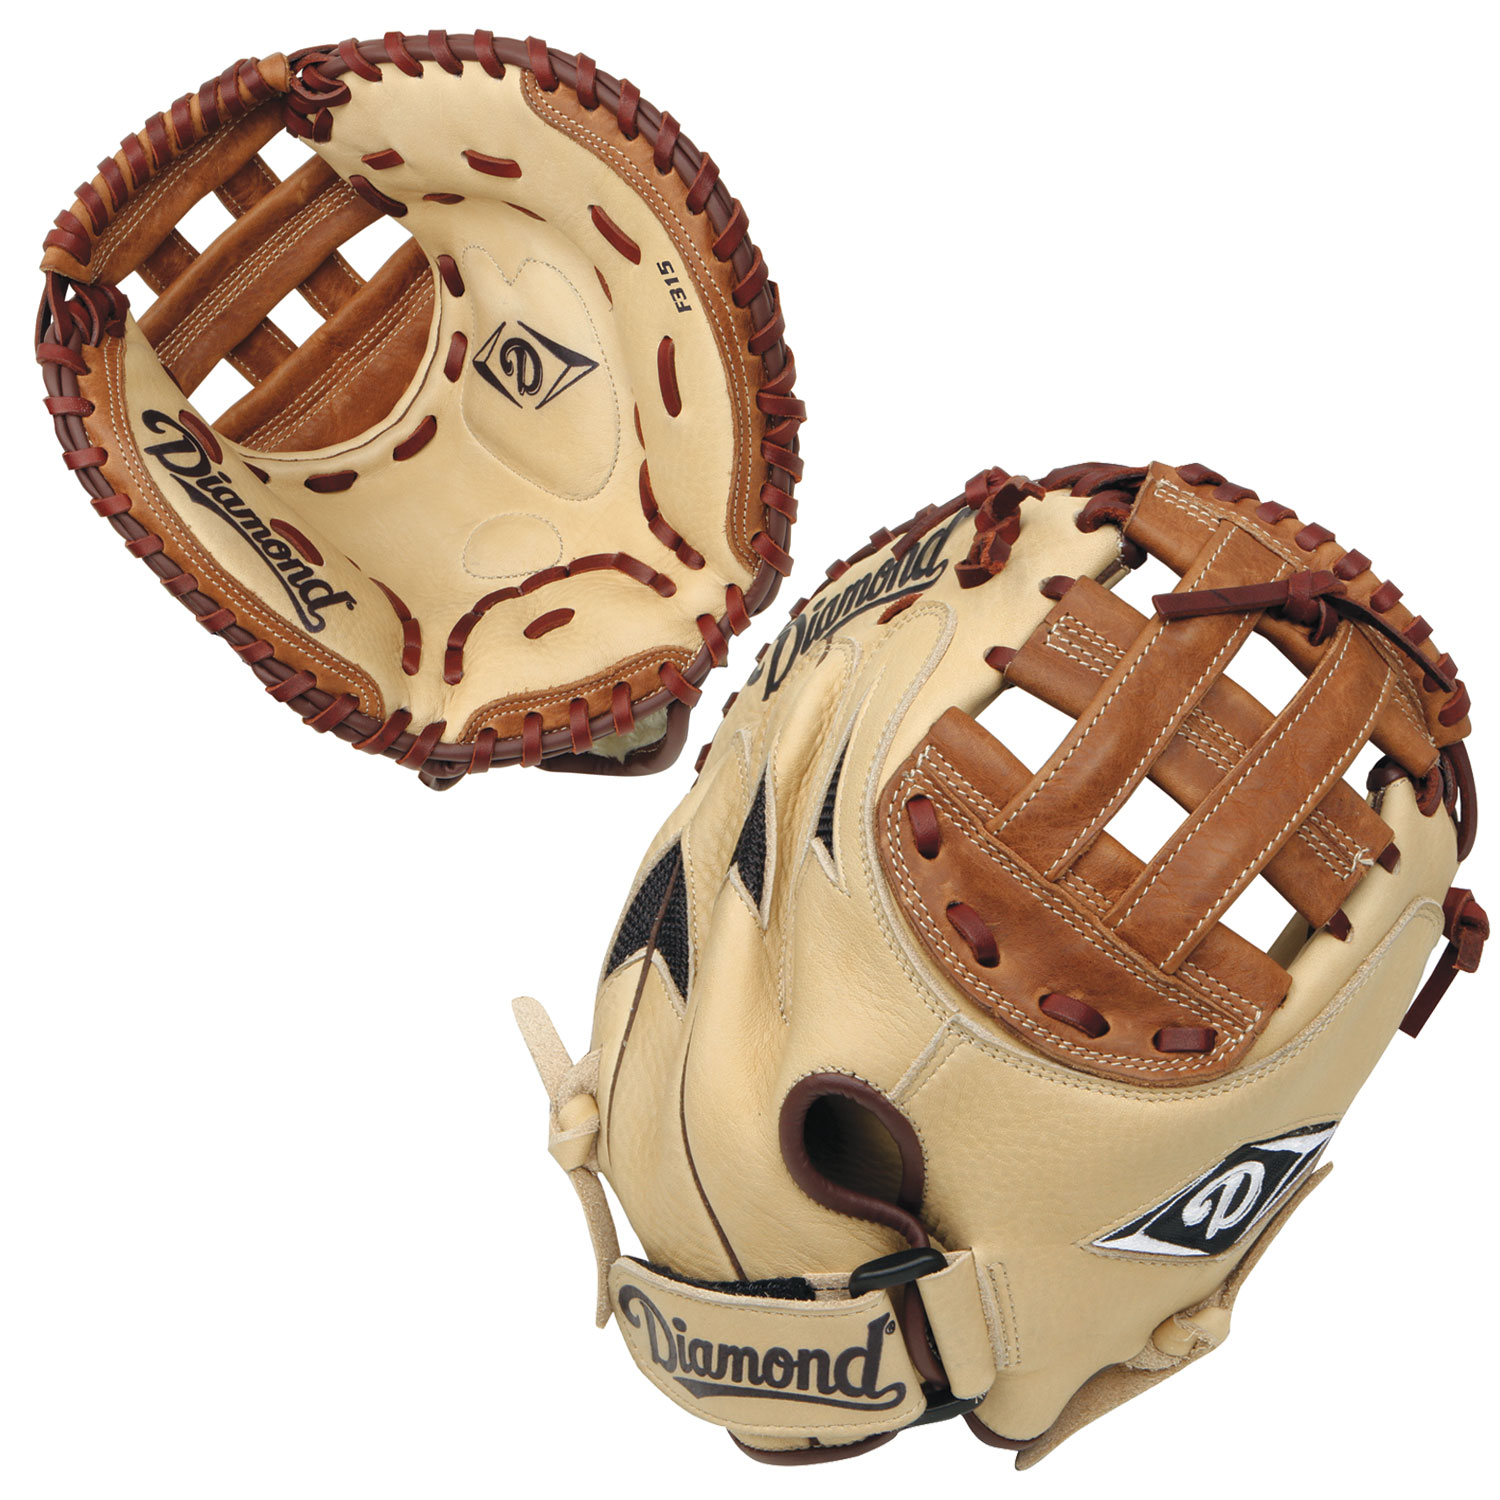 Diamond F315 31.5 Inch DCM-F315 Youth Fastpitch Softball Catcher's Mitt by